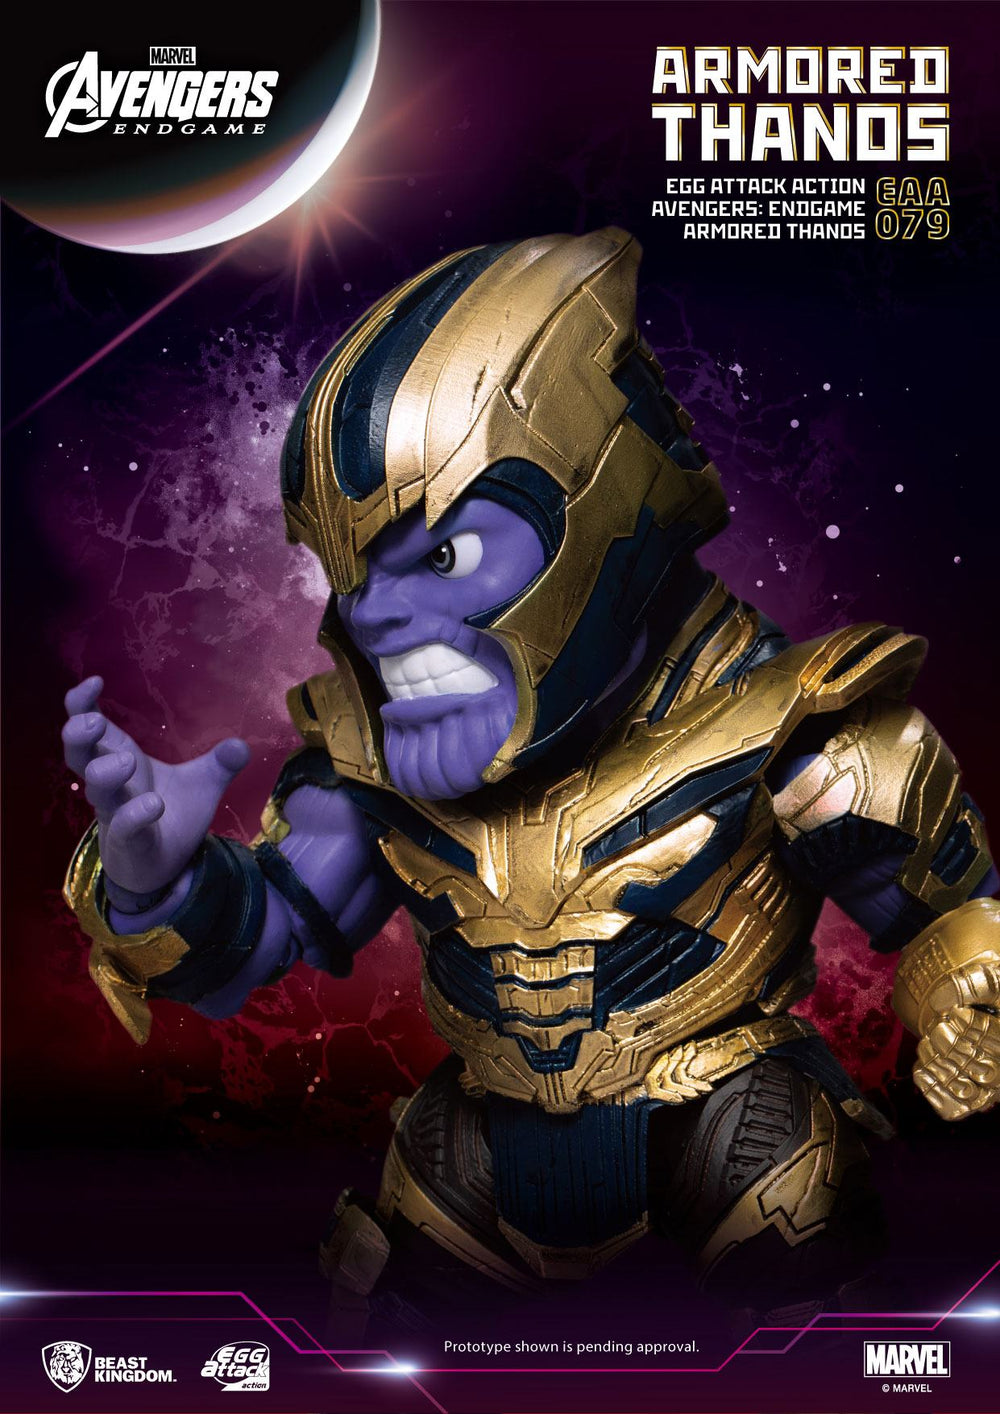 Beast Kingdom Avengers: Endgame Armored Thanos Egg Attack Action Figure